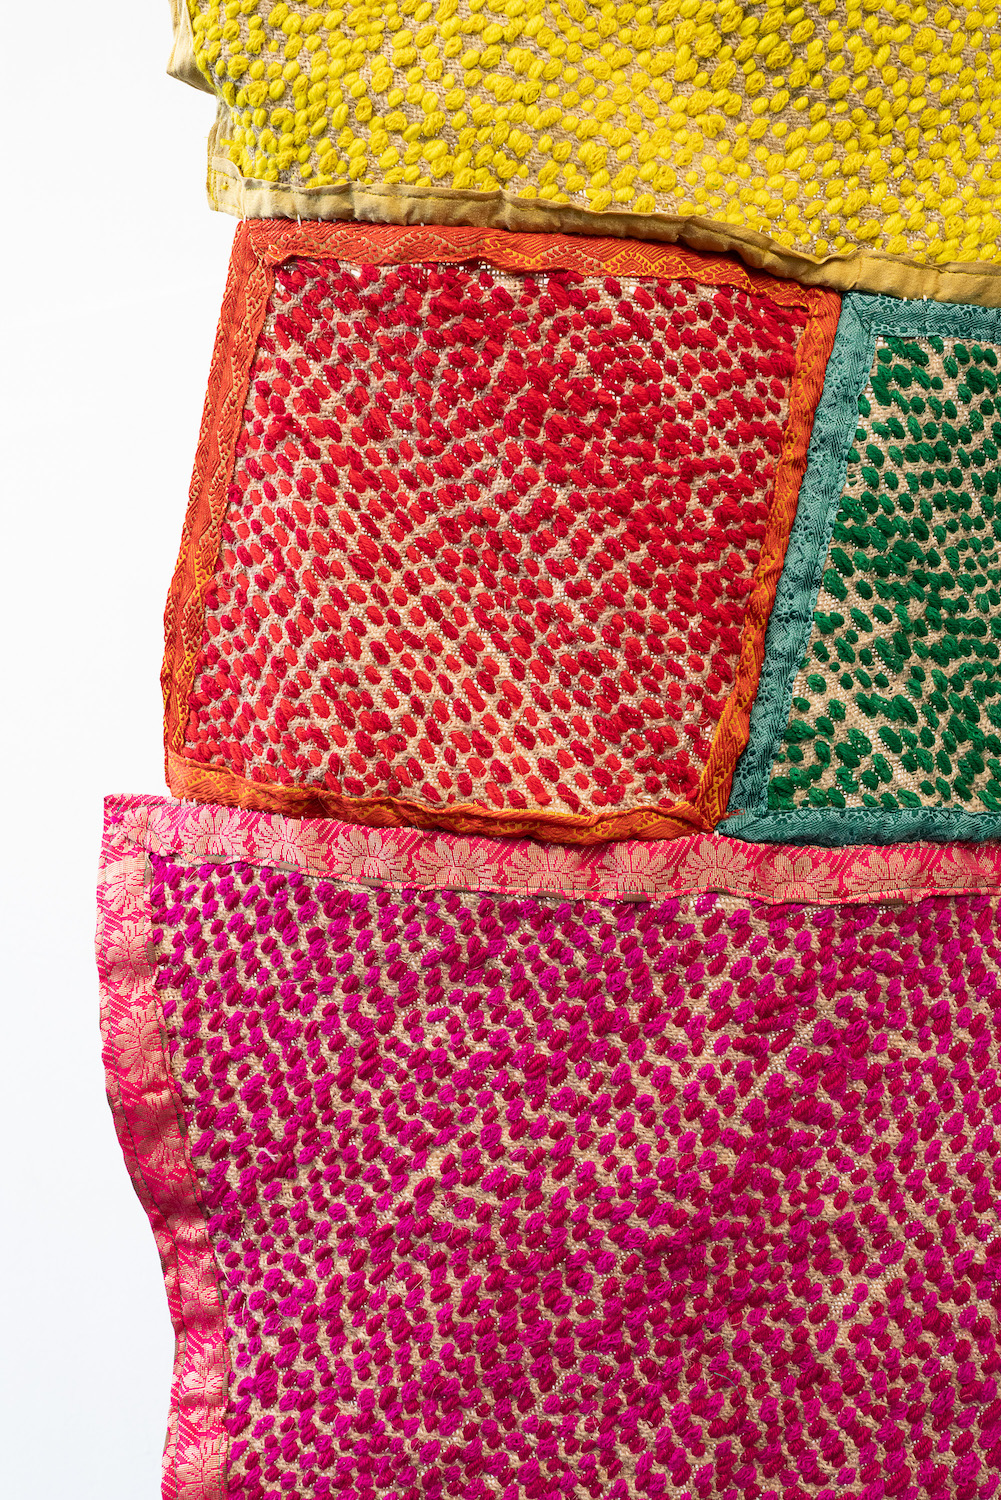 shfika Rahman, Redeem (Natore) (detail), 2021. Stitching on 'Burlap' (a local handmade fabric made by the indigenous community Natore) with recycled Saree and Dhoti. 233 x 173 x 12 cm. Unique.